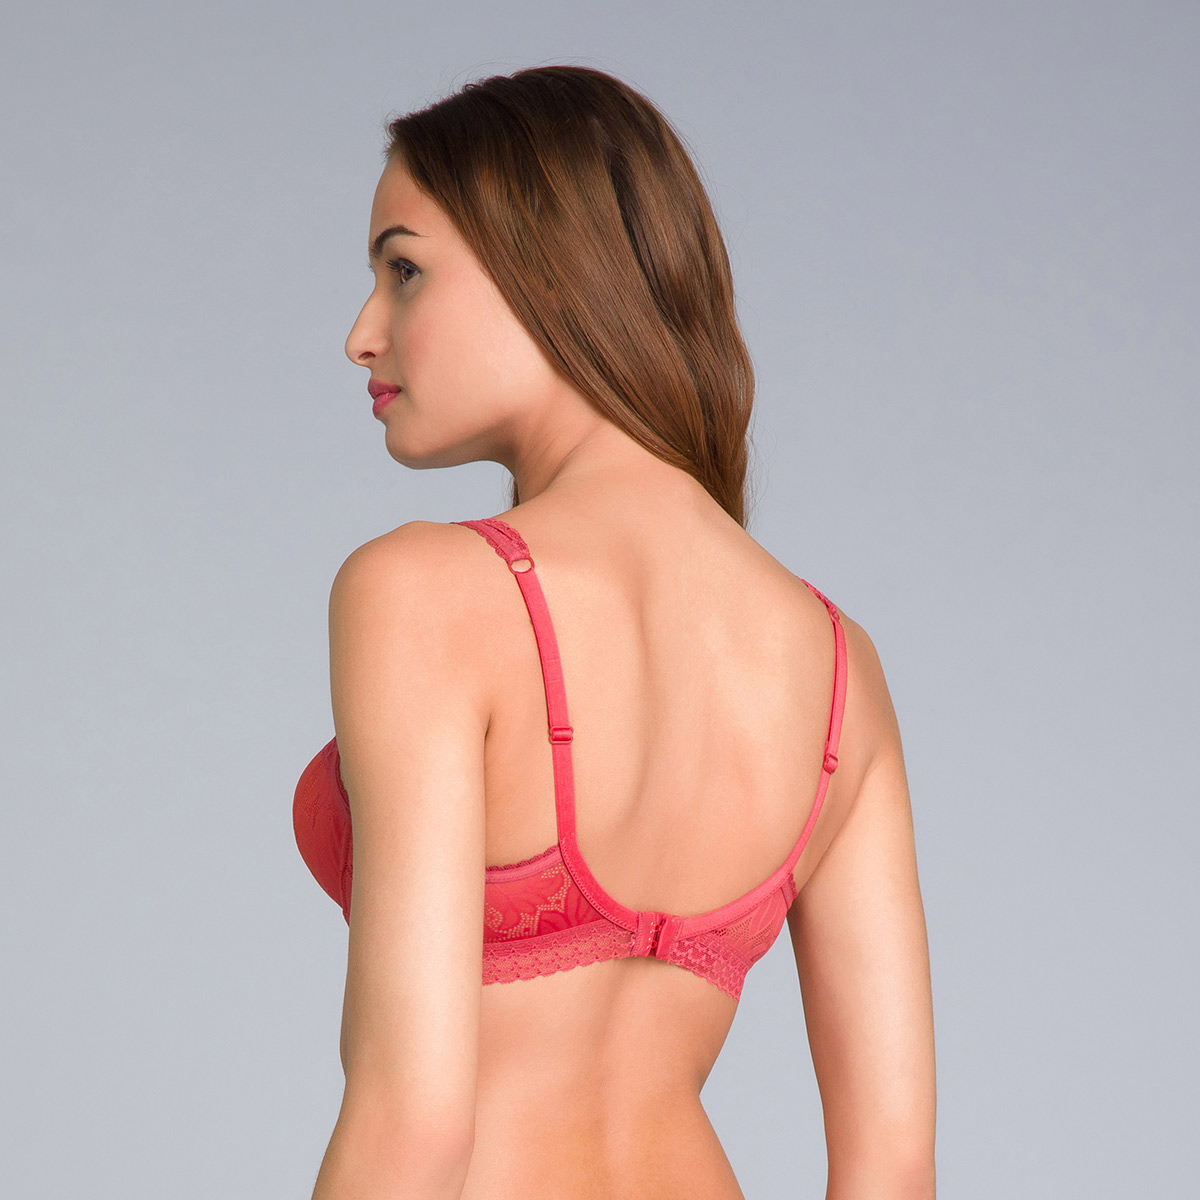 Balcony Bra in Heritage Red Lace - Invisible Elegance-PLAYTEX